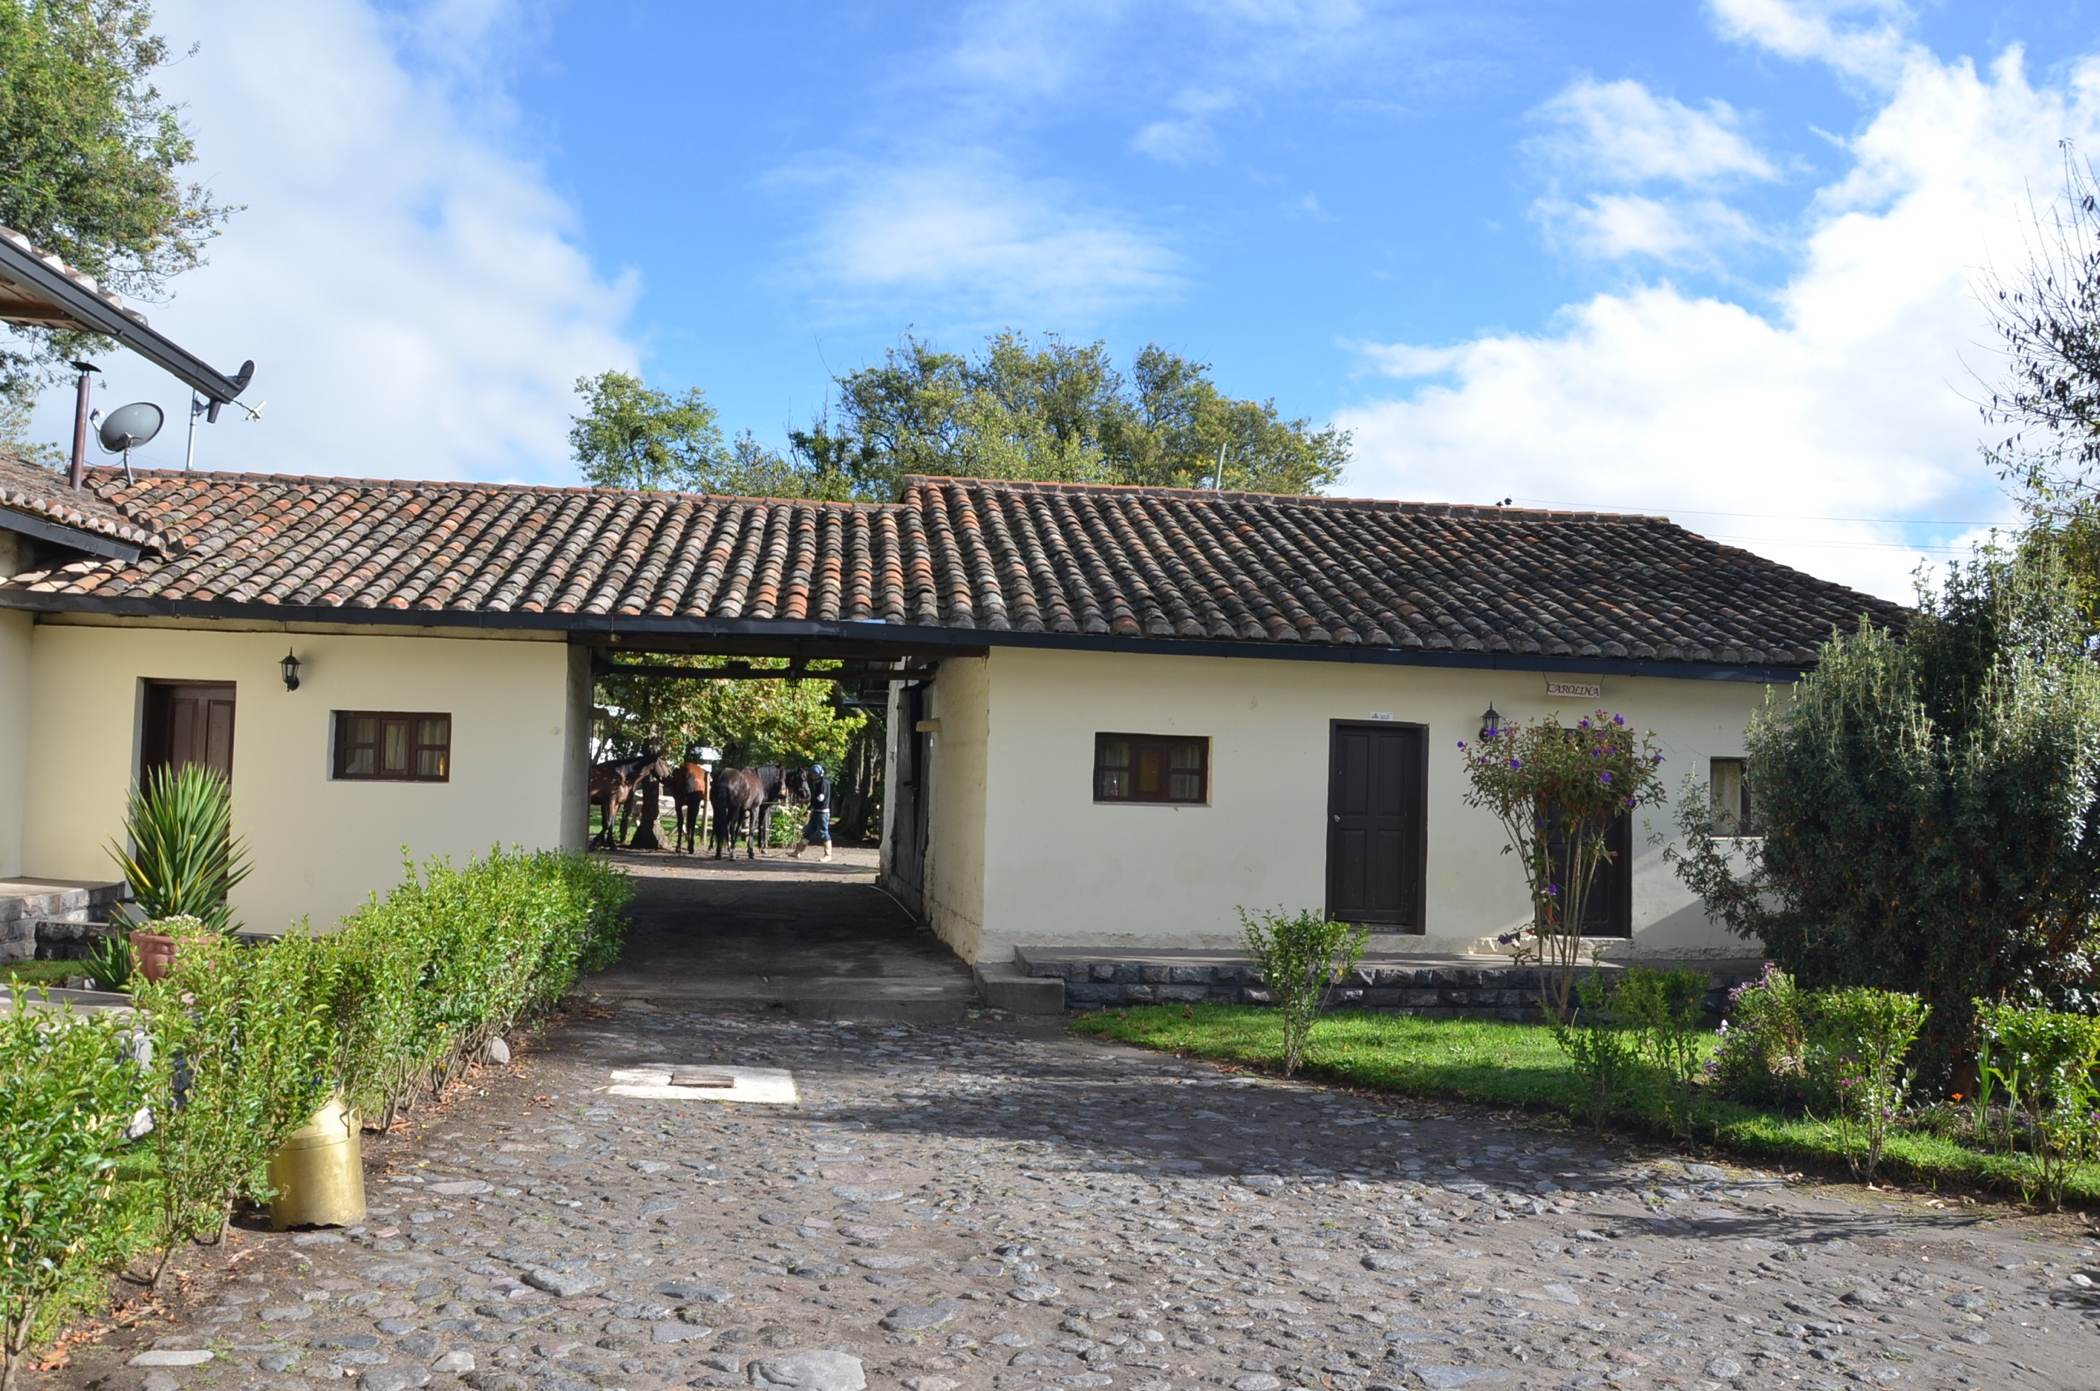 Hosteria_Papagayo_Hotel_Cotopaxi_Ecuador_Outside